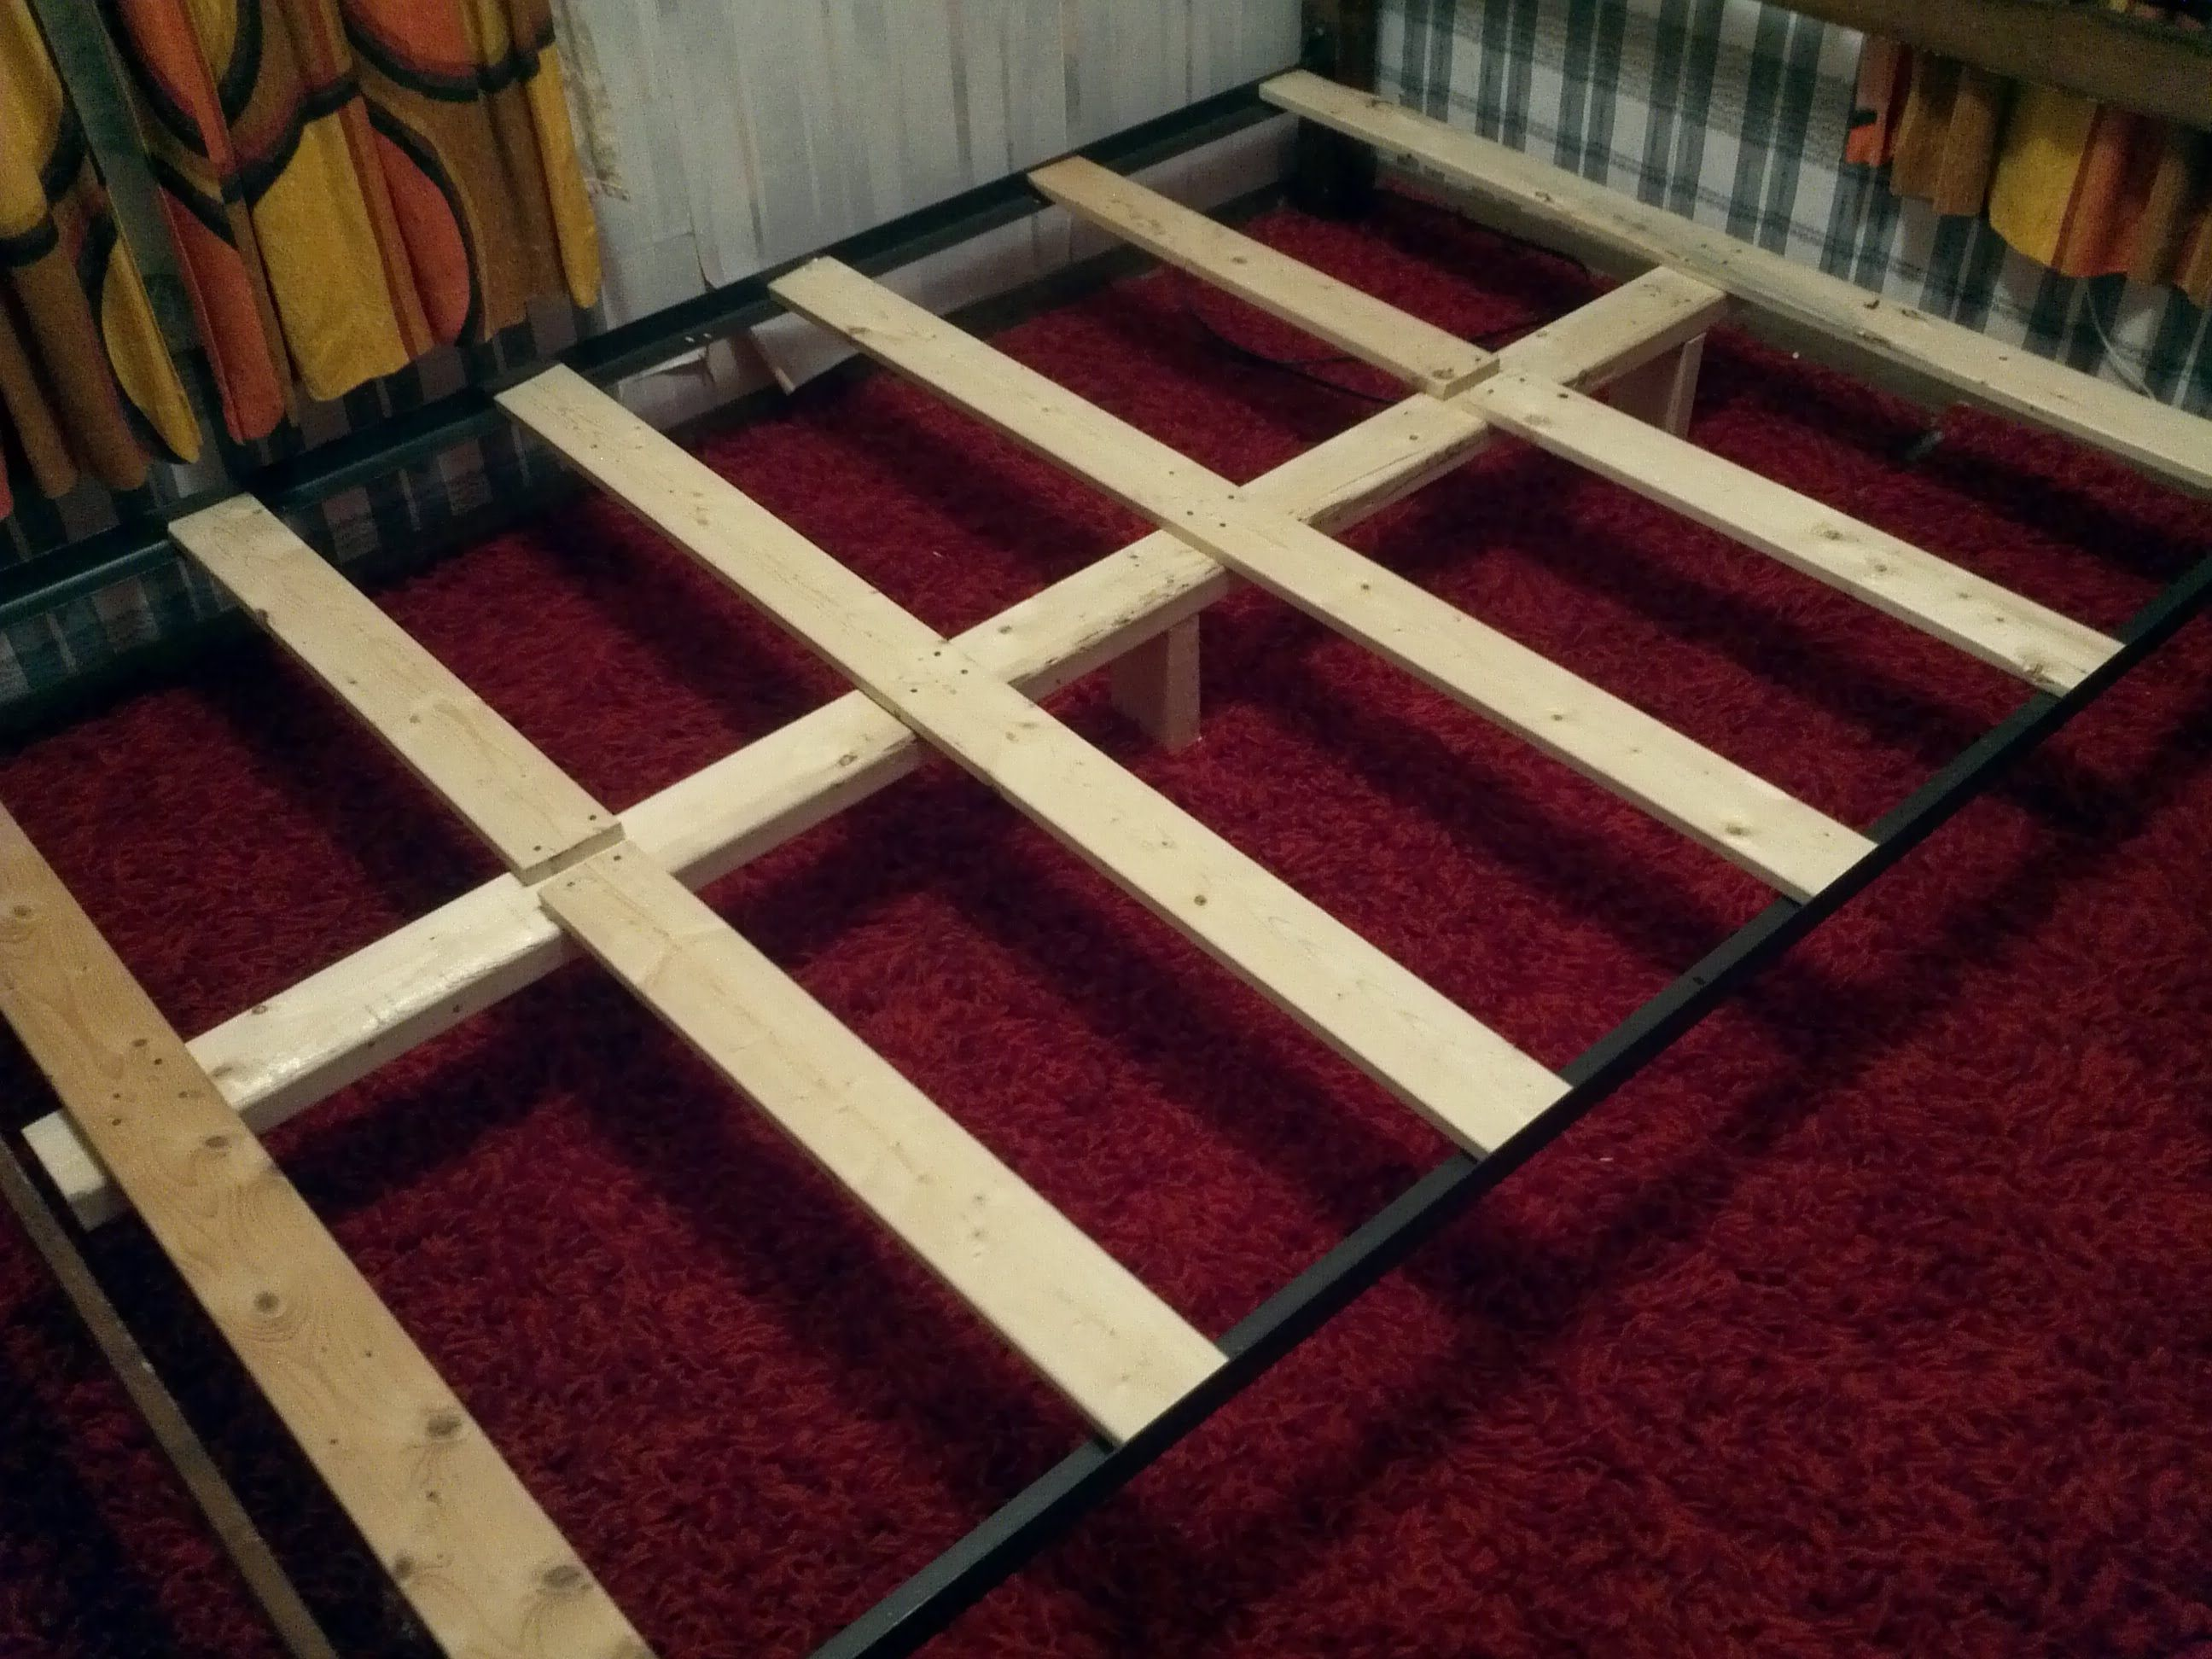 How To Support A Mattress Without A Box Spring